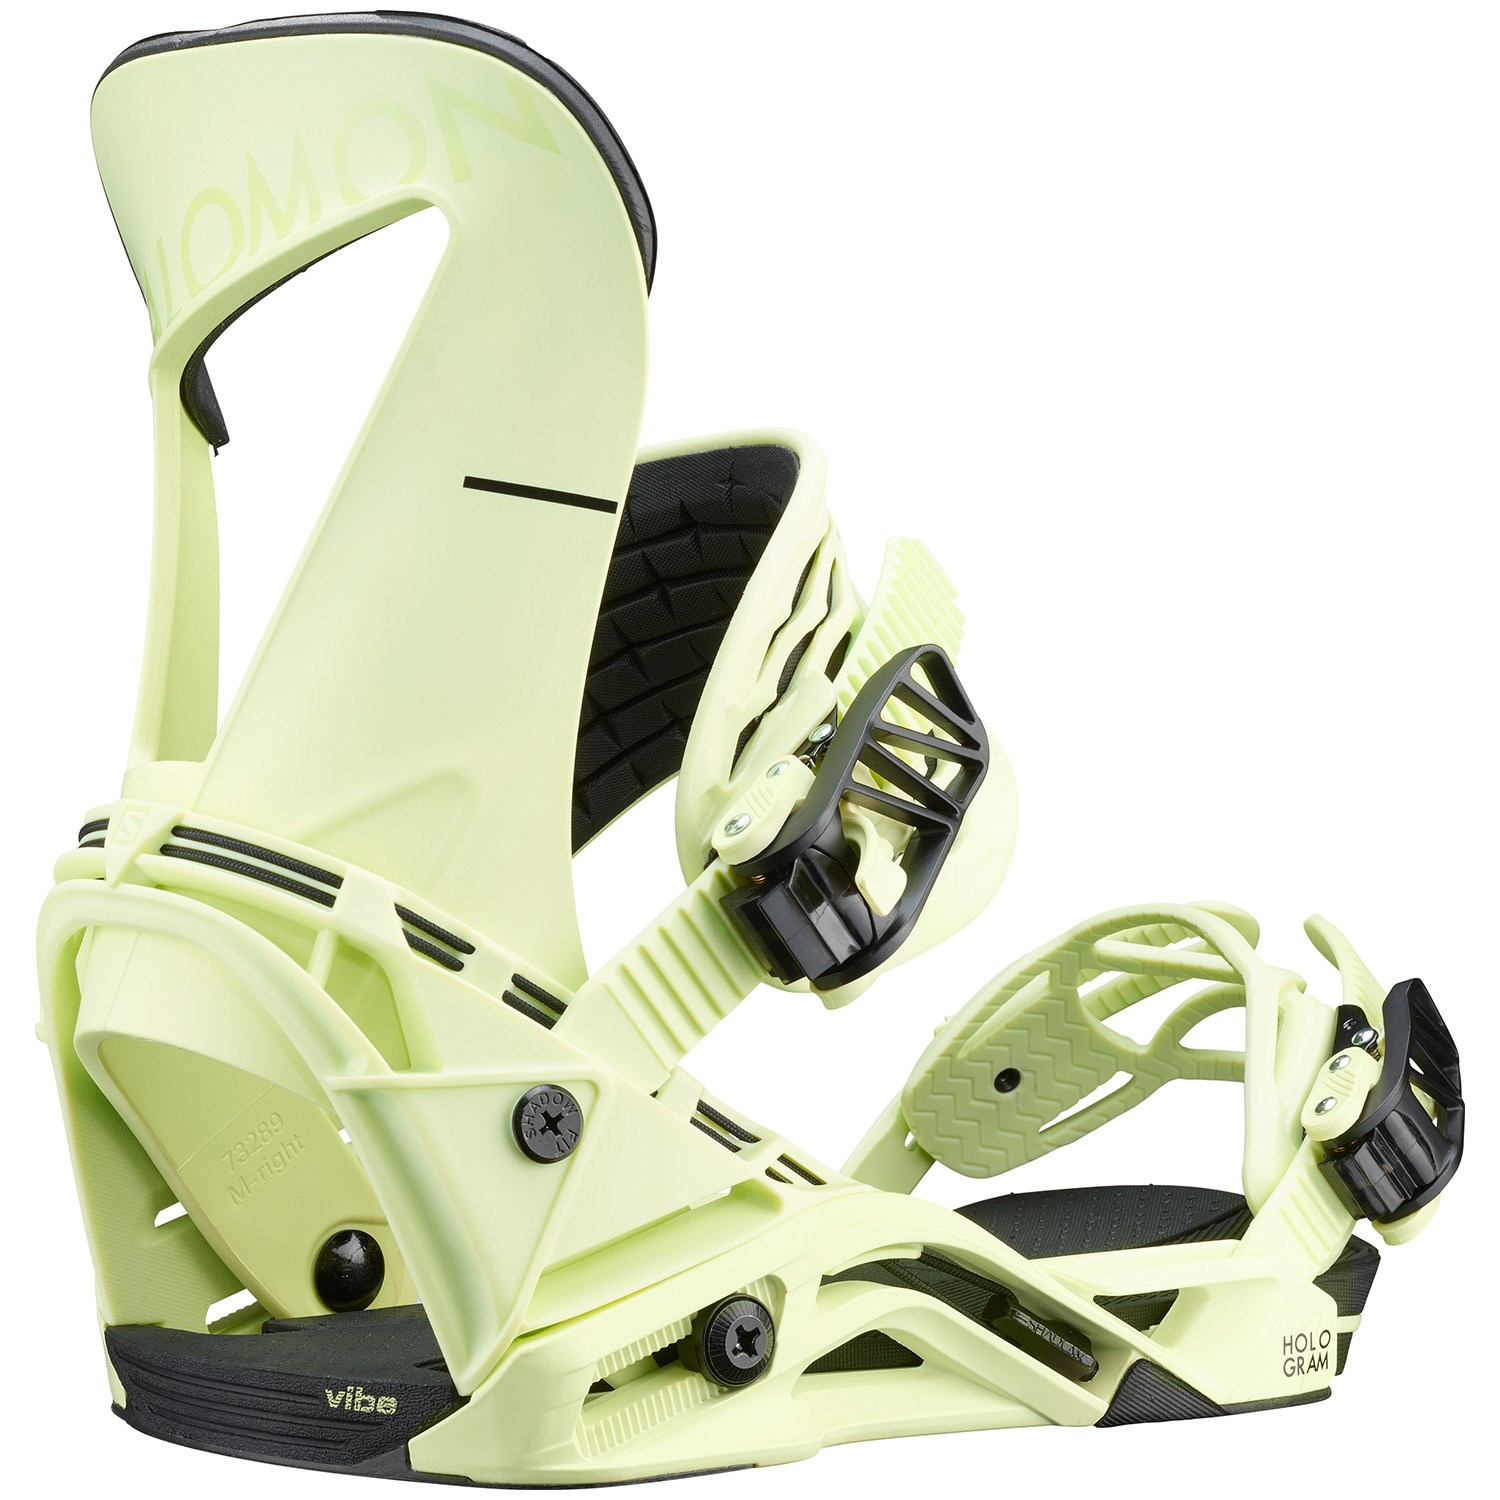 2017 Salomon Hologram and District Snowboard Binding Review